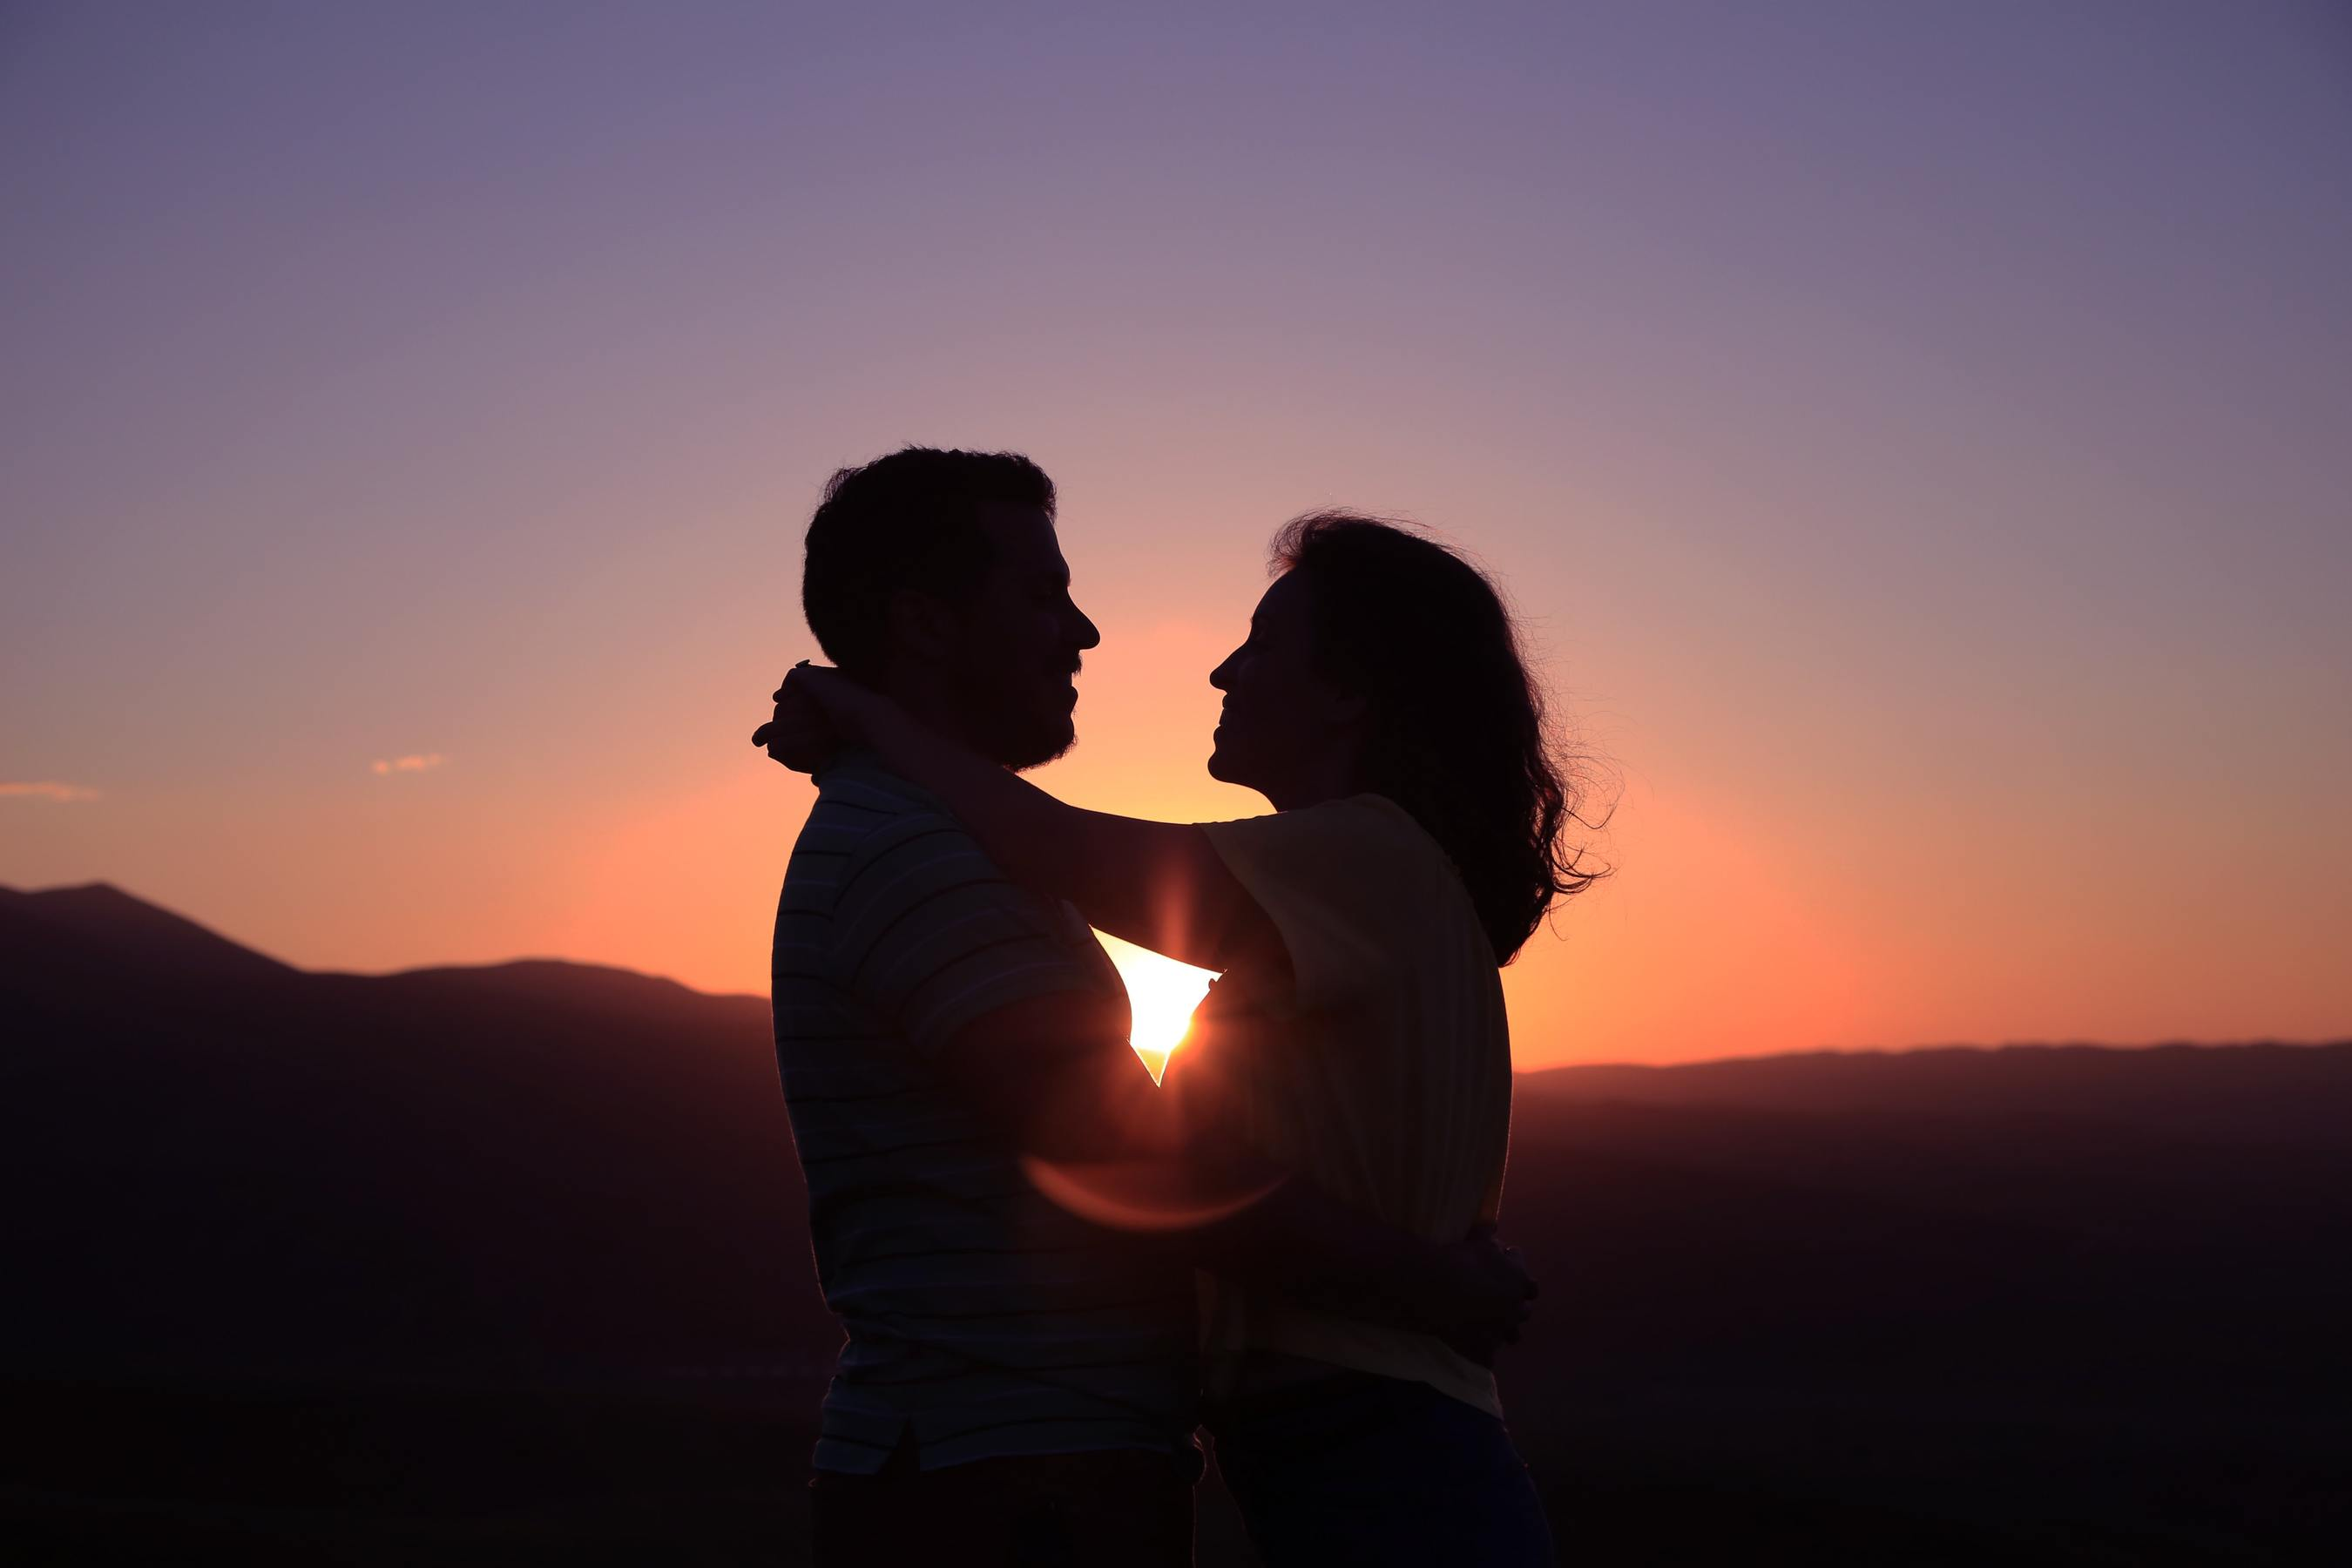 A couple embracing against a sunset